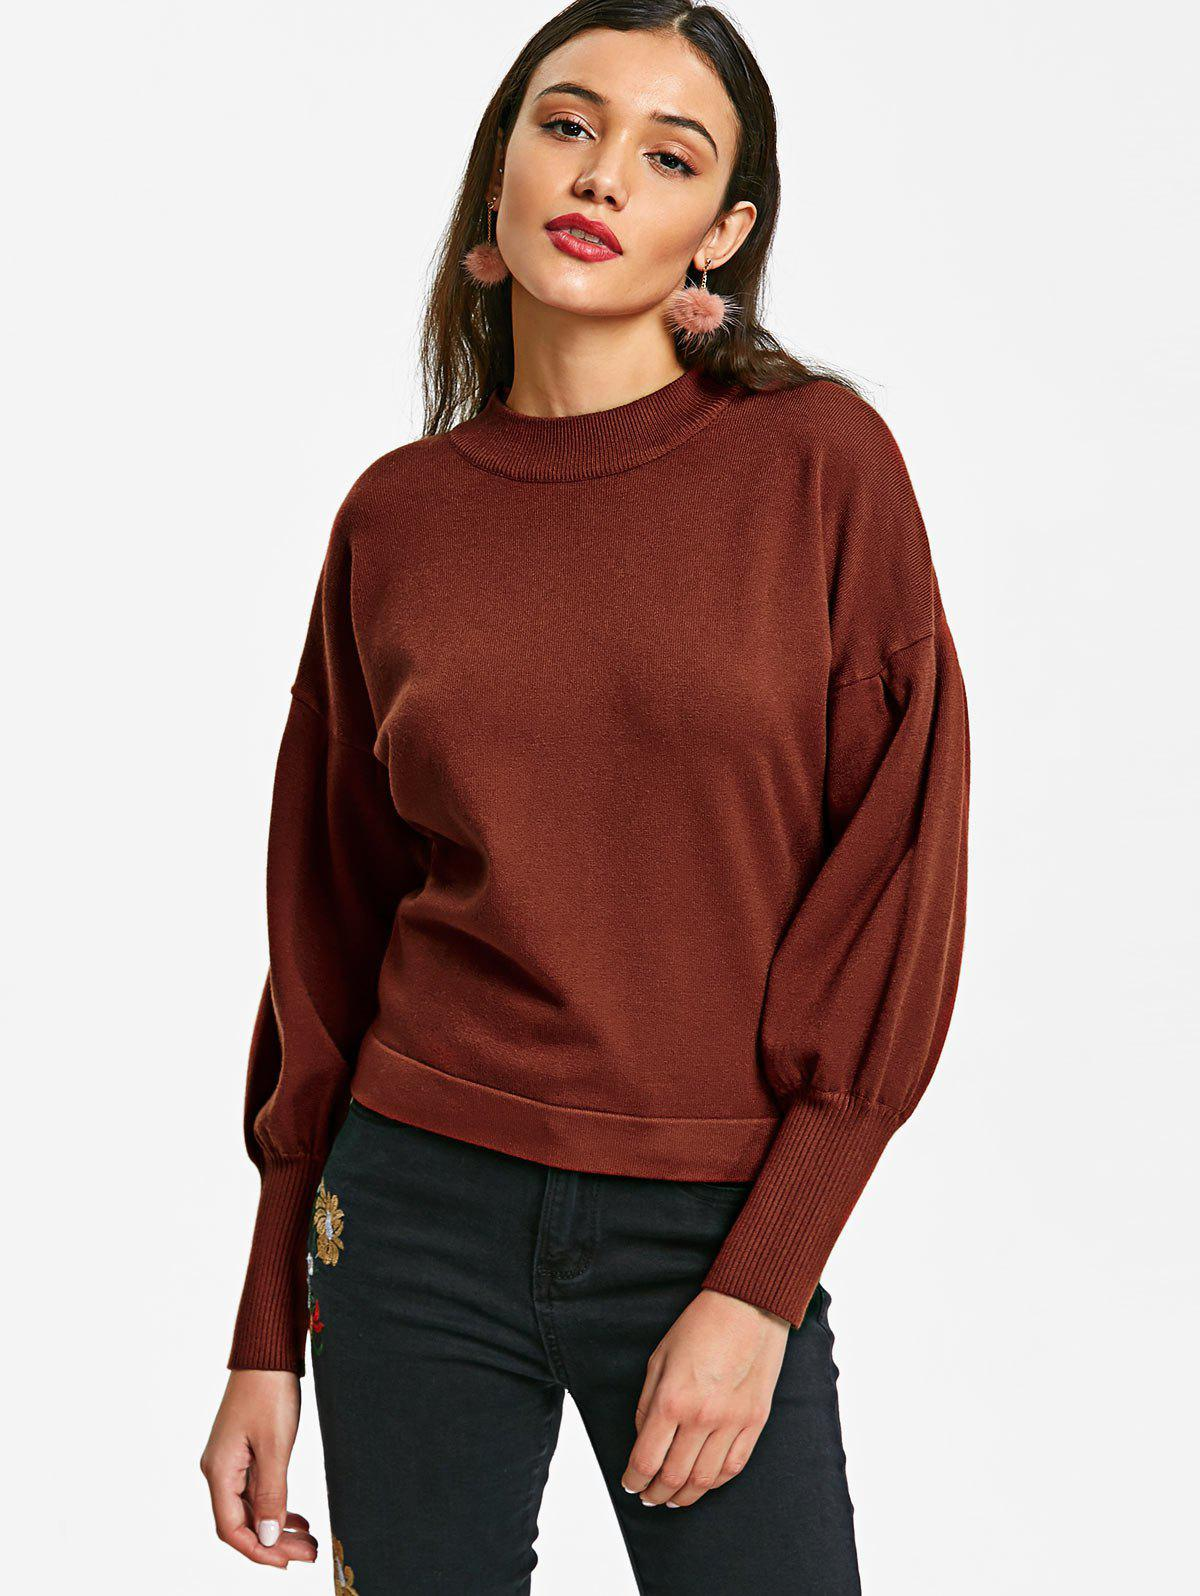 Pullover Crew Neck Ribbed Cuffs Sweater 234179801